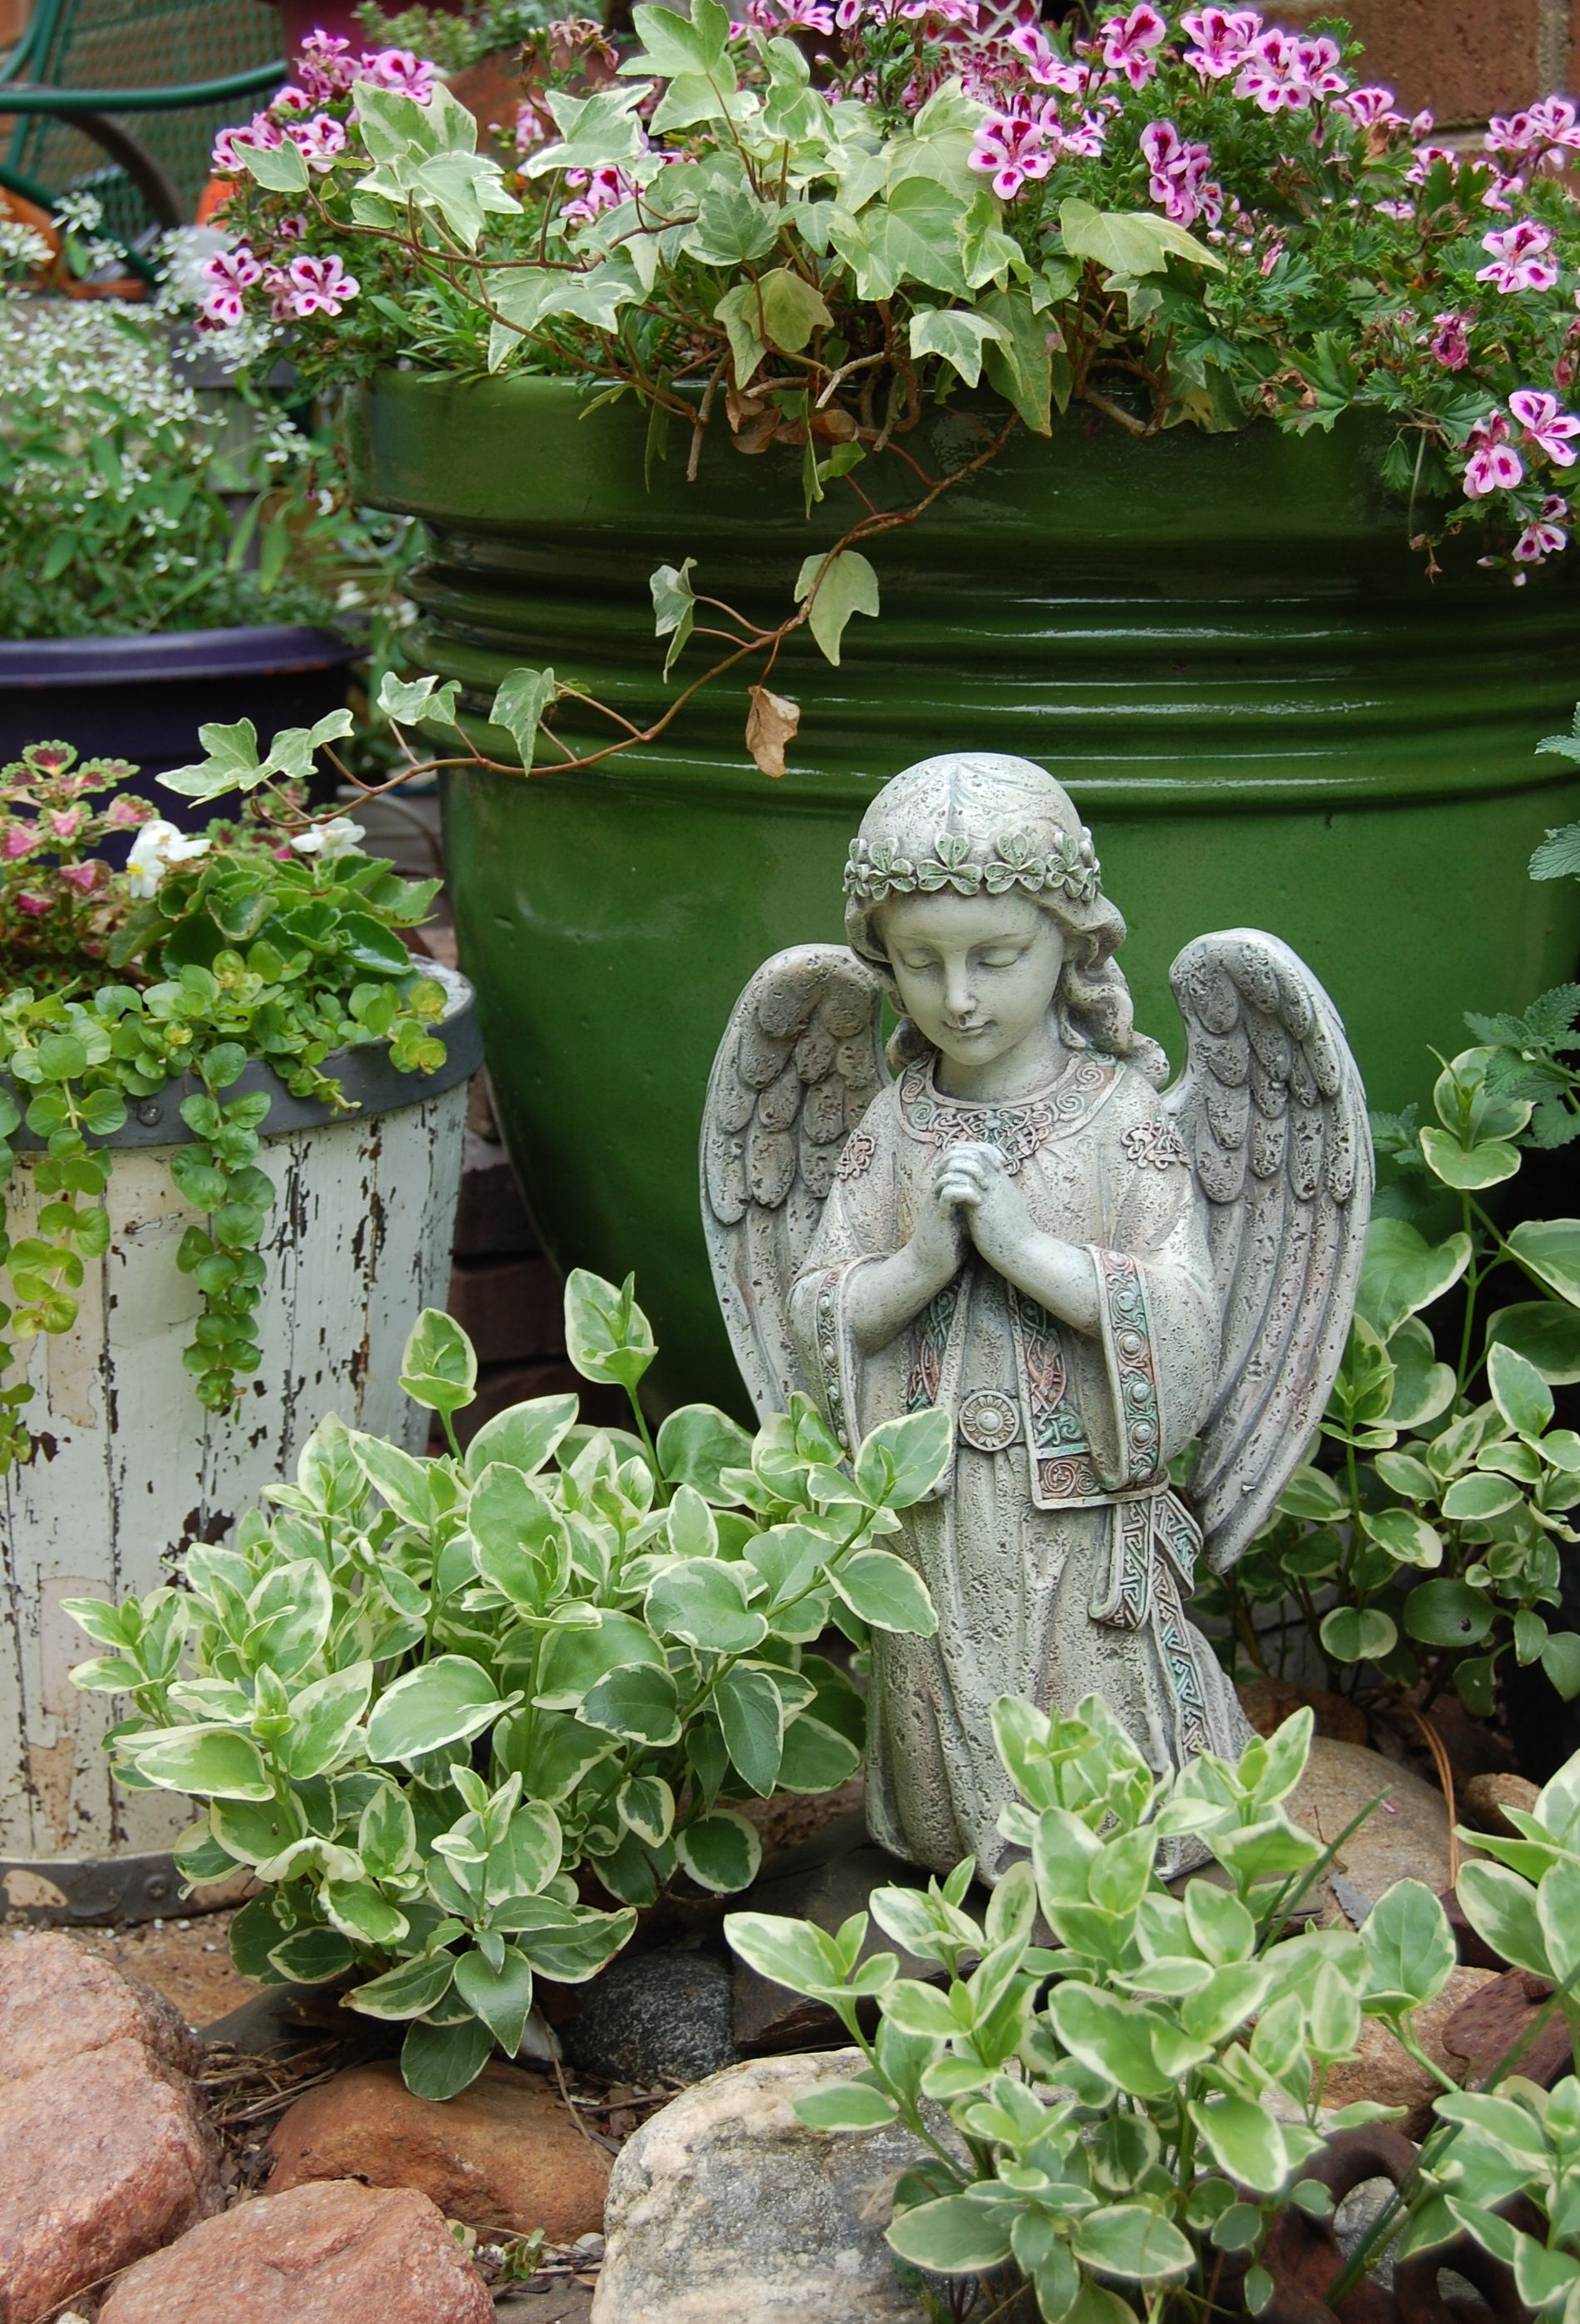 Garden Angel Praying Angel Kneeling Garden Figure 12 25 Inches